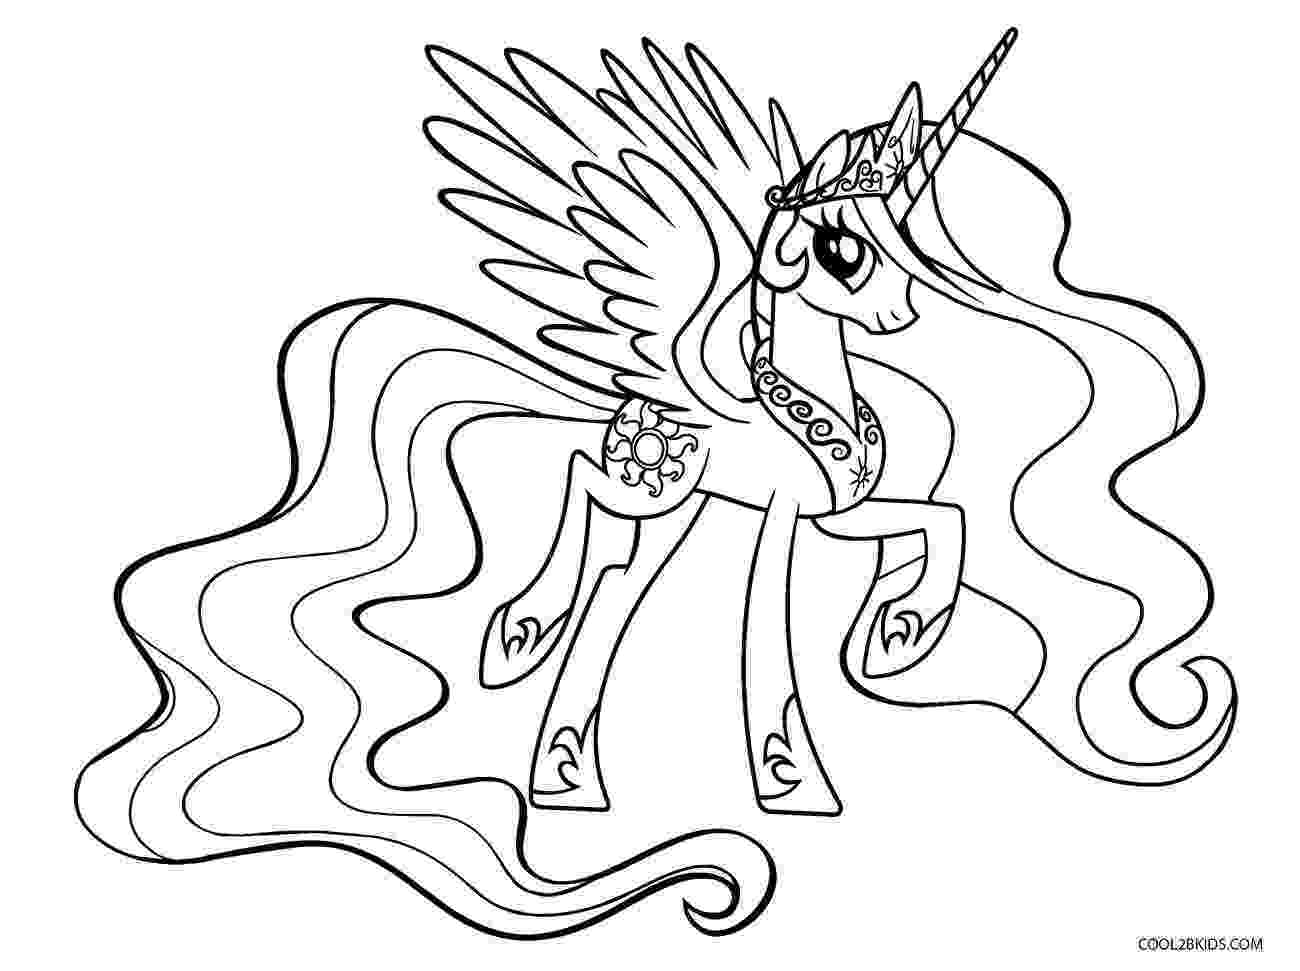 coloring pages of ponies free printable my little pony coloring pages for kids ponies coloring of pages